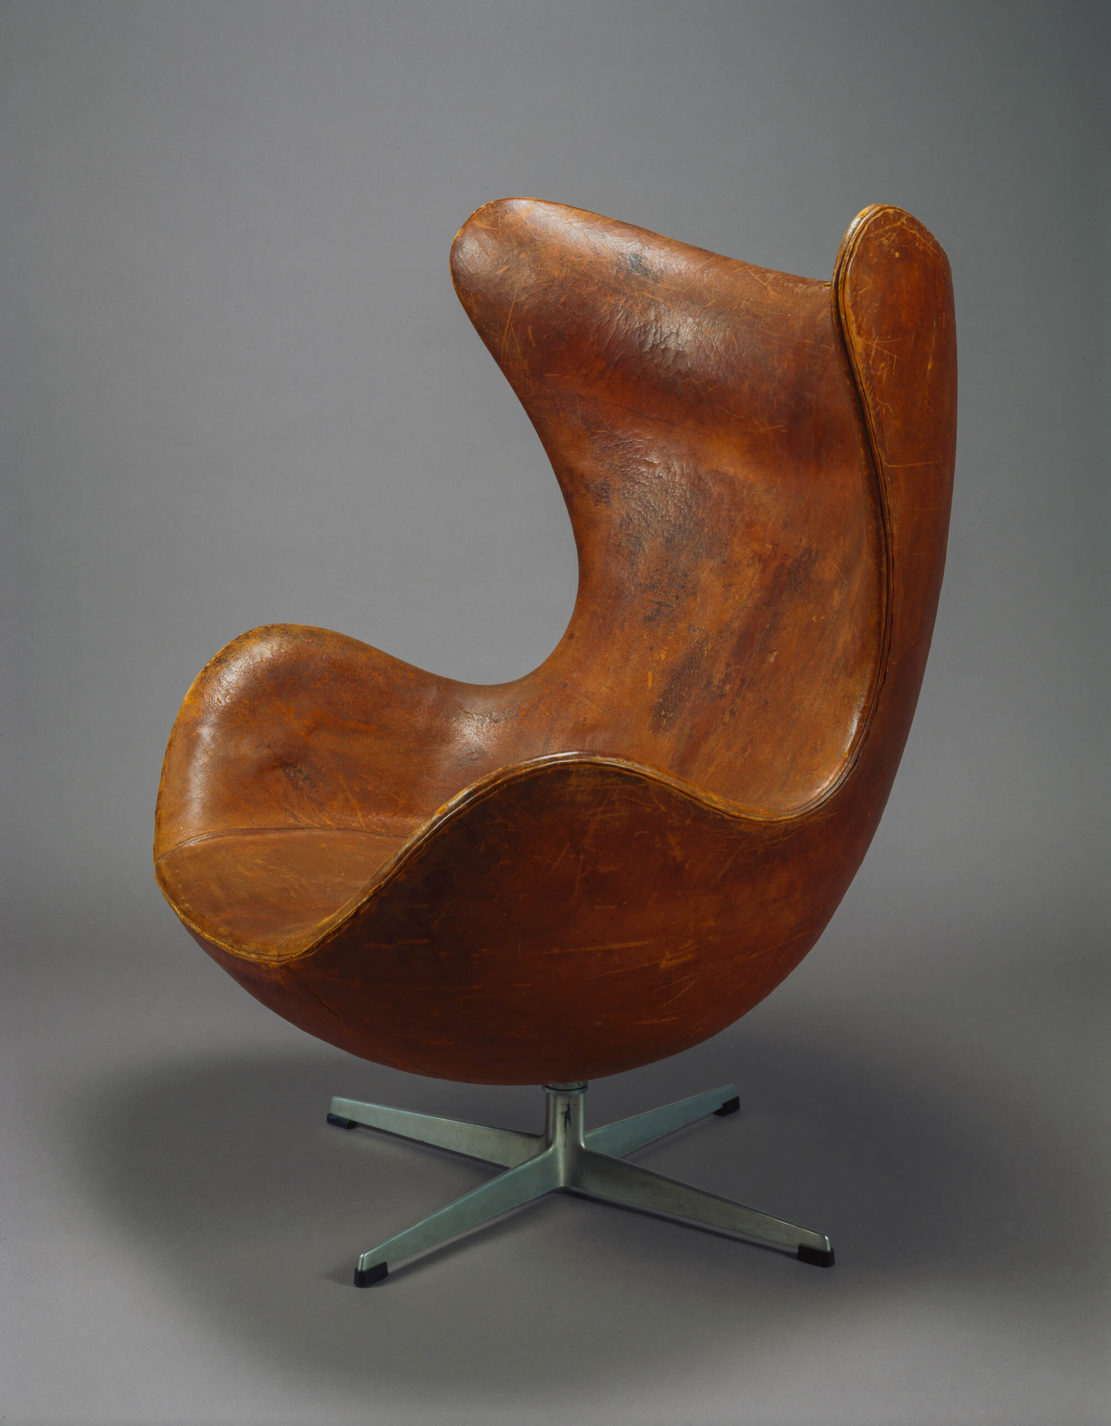 Armchair covered in brown leather as one shell with an X-shaped metal base.